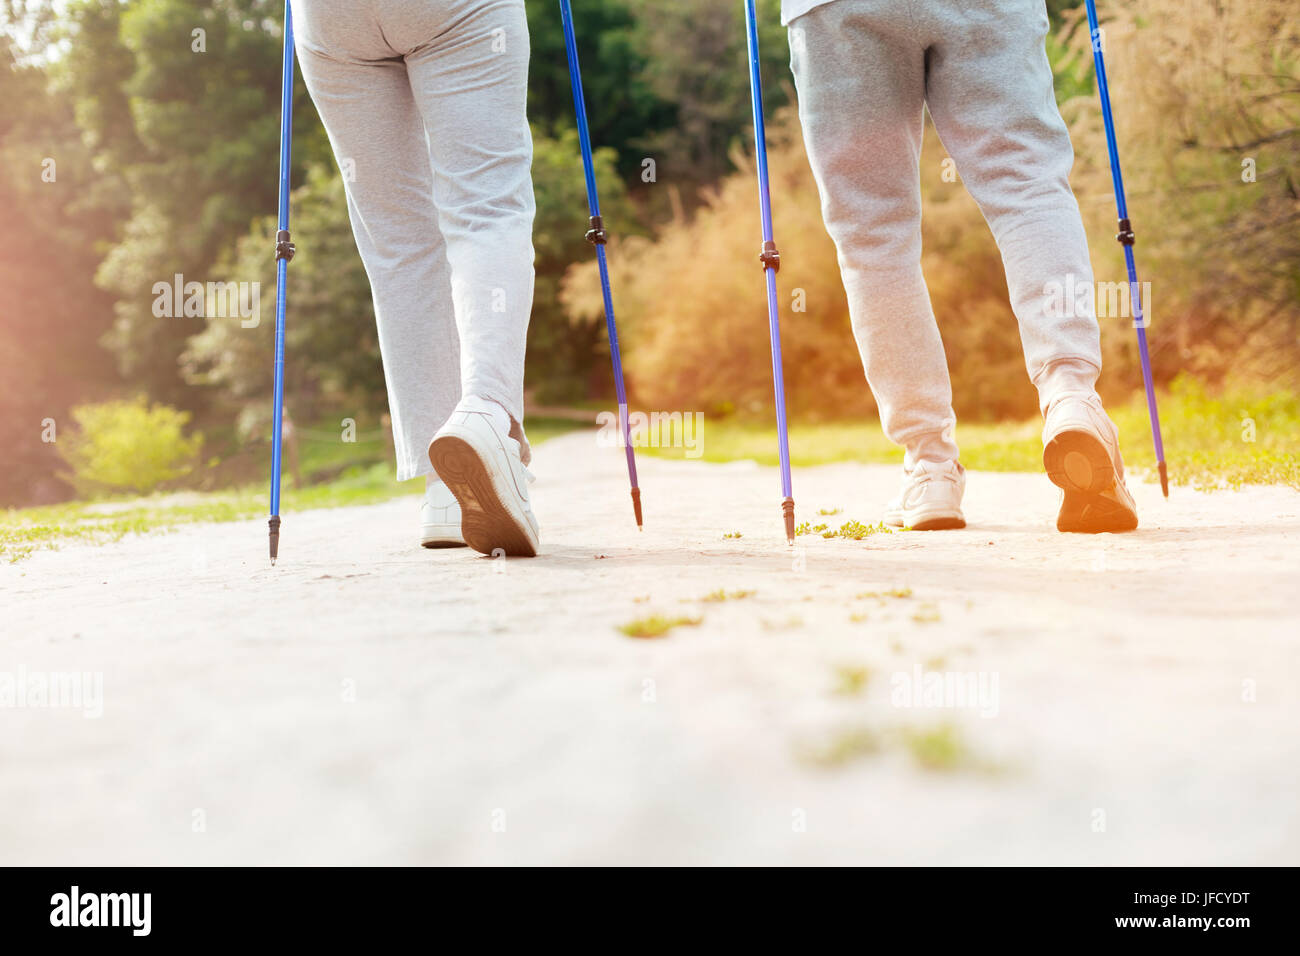 In synch. Sporty nice elderly couple holding Nordic walking poles and going forward while exercising together - Stock Image